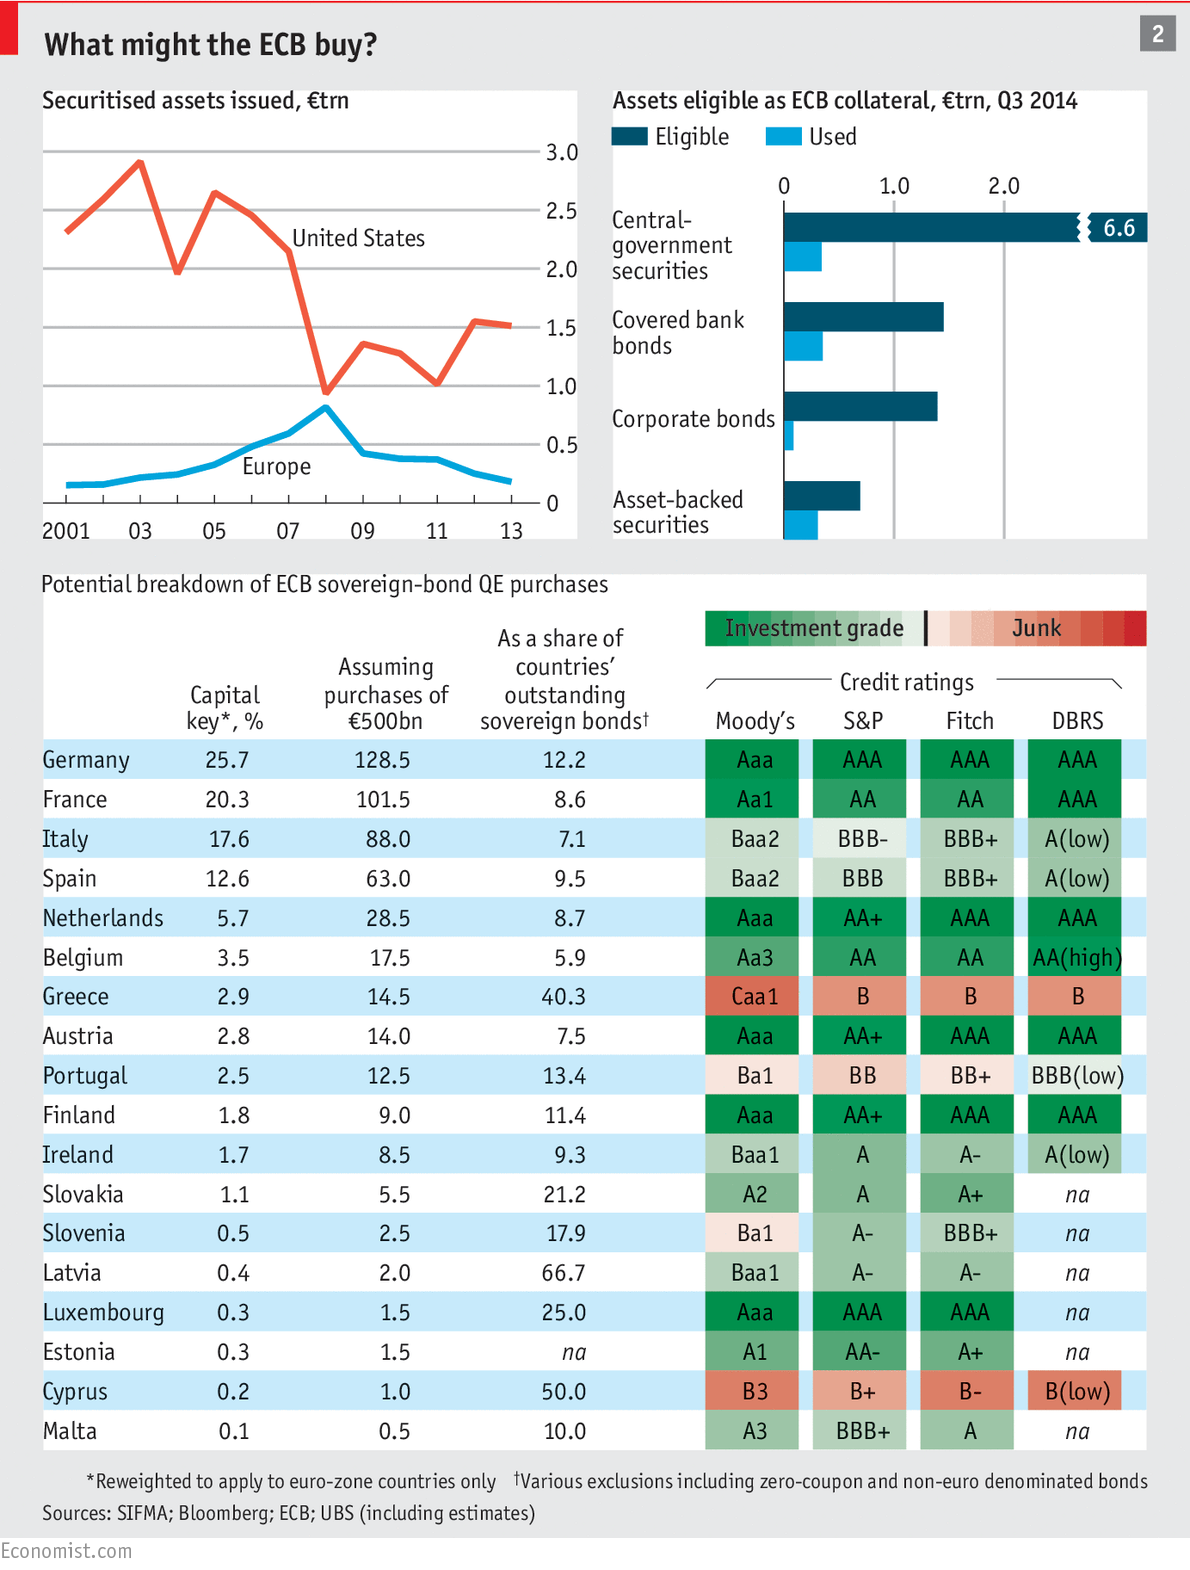 This infographic courtesy of The Economist does a good job at explaining how the ECB's EAPP will affect the structure of European banking and financial assets. The top right pane shows the gross quantity of assets that have been securitised, such securities include ABSs - the American shadow banking market remains far more developed than Europe's mainly deposit based system. The top right pane indicates that most of unencumbered collateral in the Euro banking system still resides in the form of sovereign debt securities. The lower pane basically breaks down the plausible allocation of EAPP purchases by the ECB based on the respective national banks' capital keys